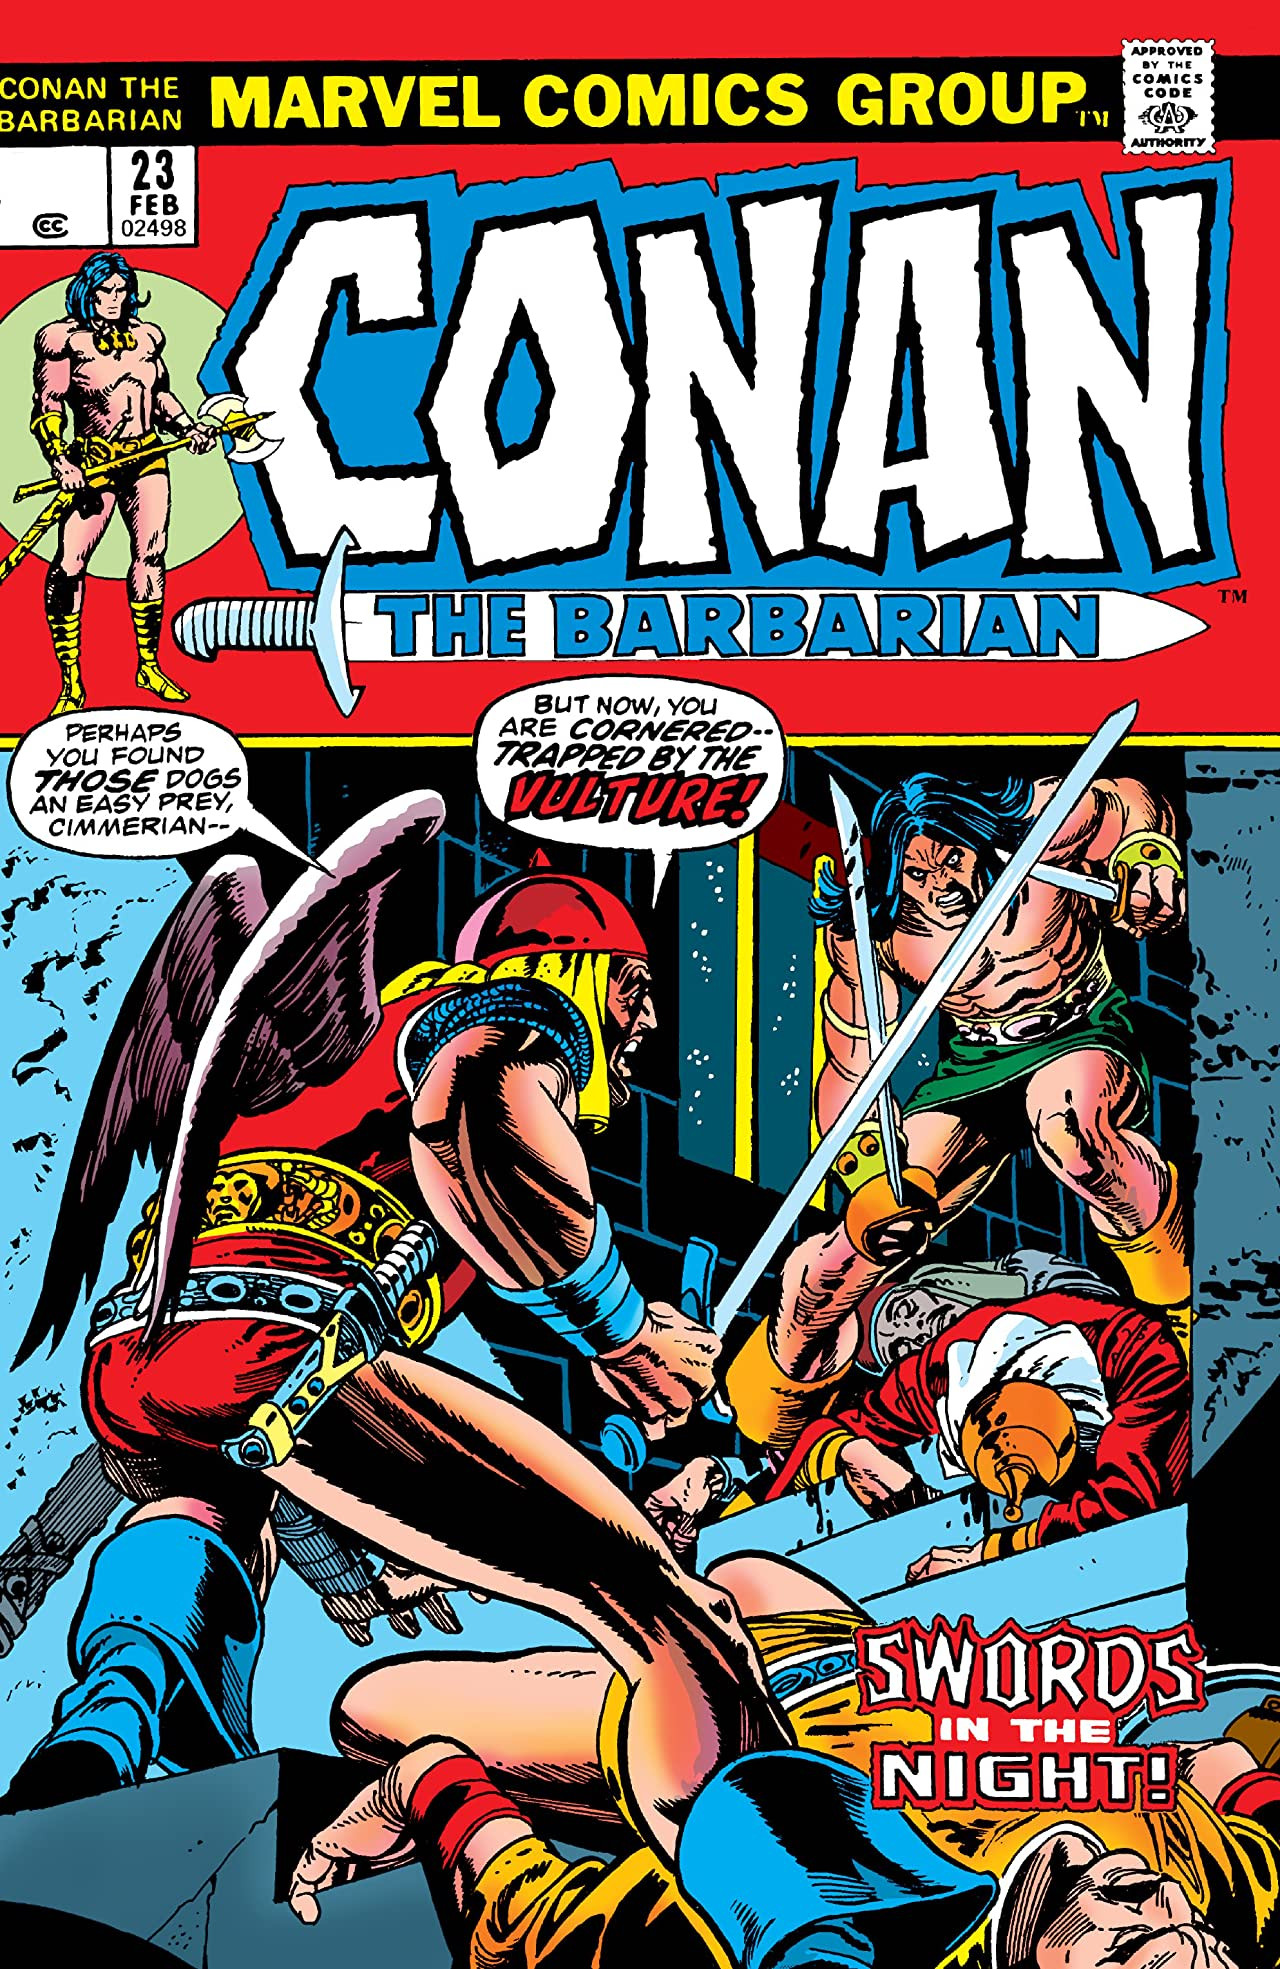 Conan the Barbarian Vol 1 23